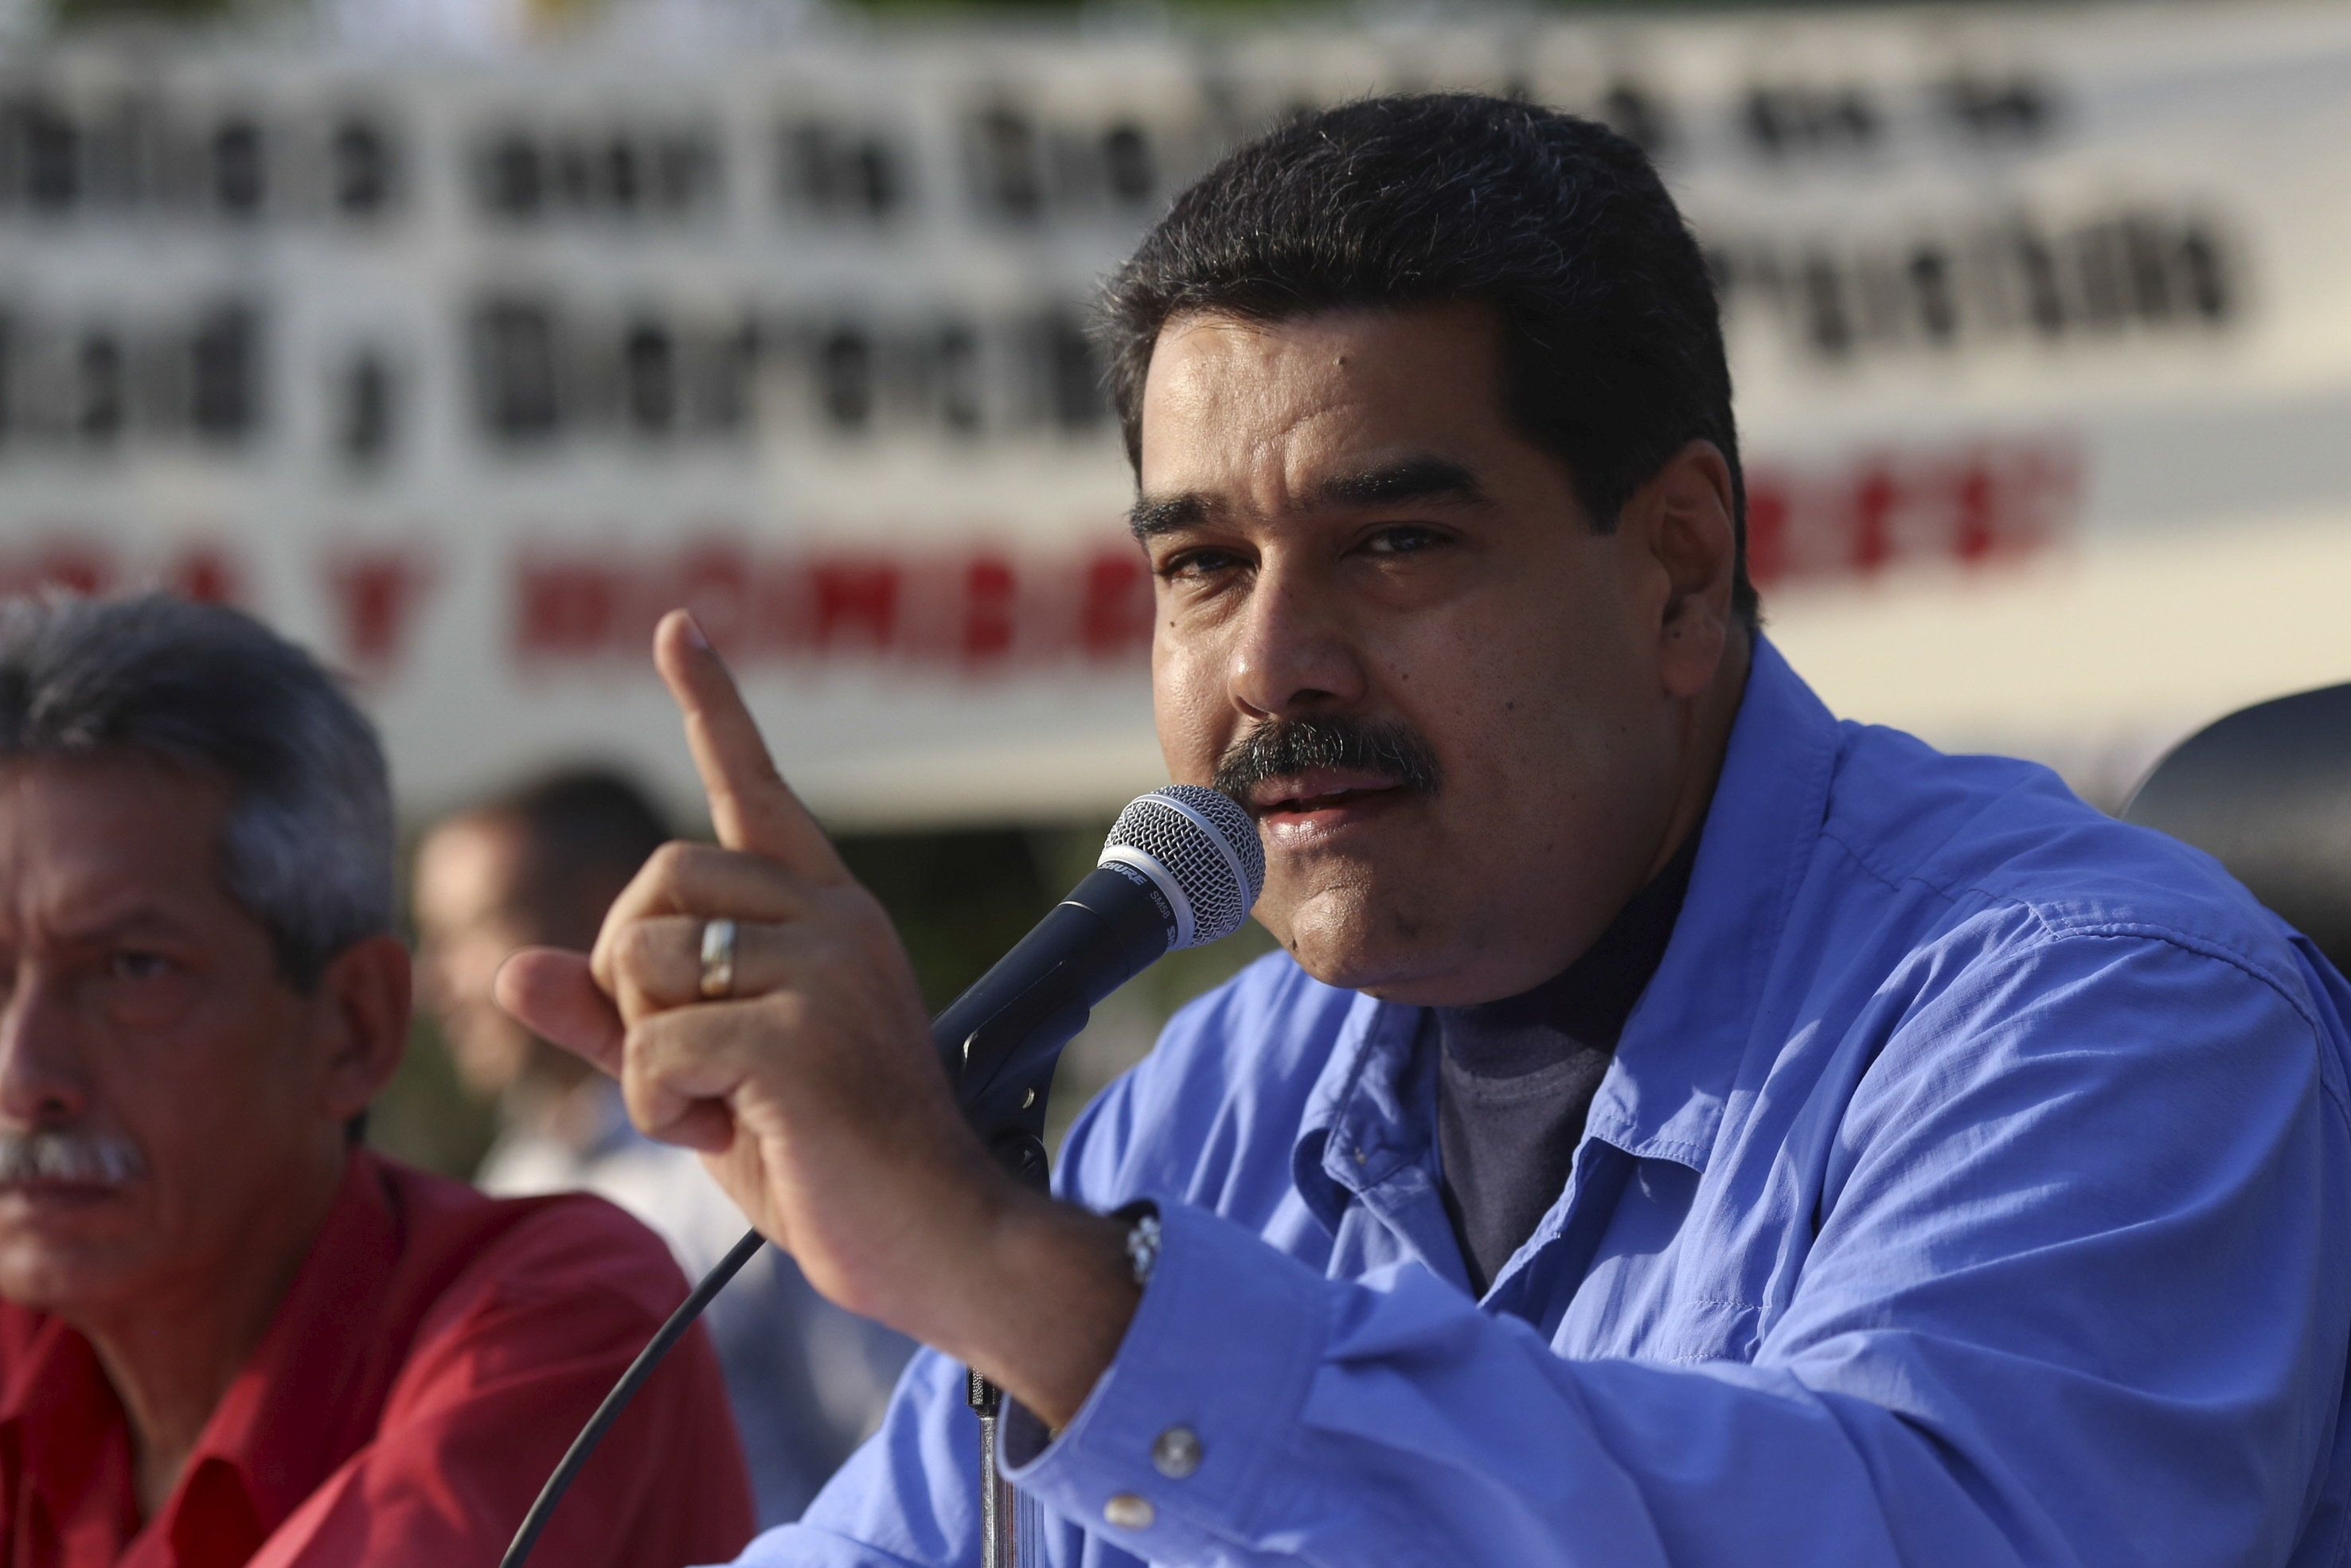 Venezuela has ordered state employees to work a two-day week as part of the government's scheme to save energy.